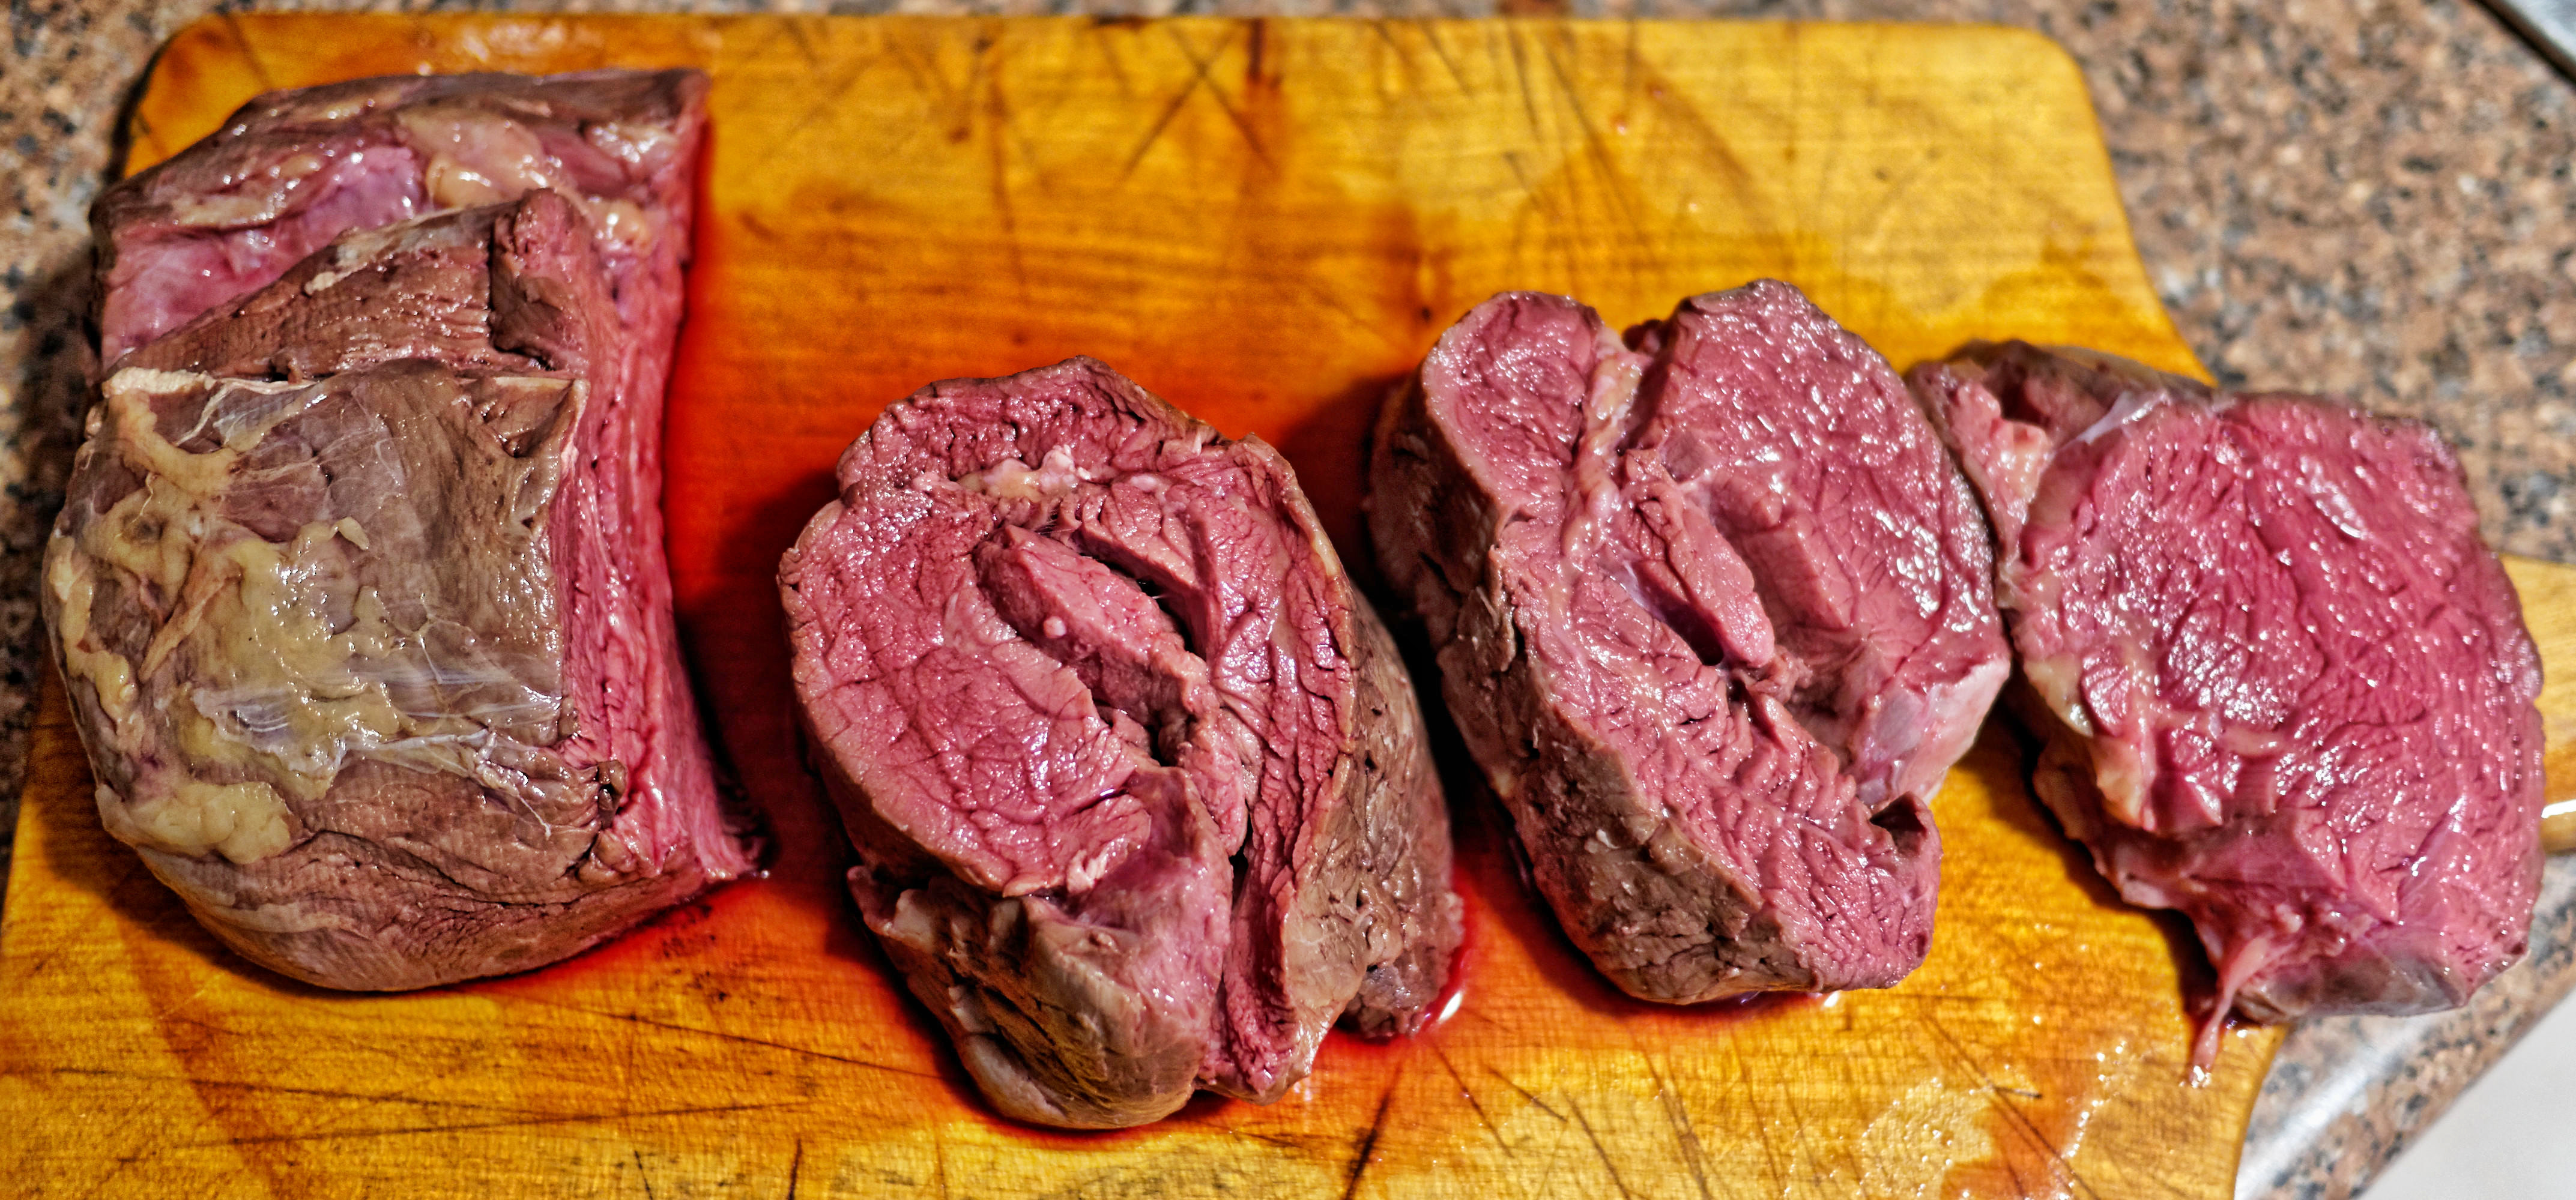 This should be Aldi-filet-2.jpeg.  Is it missing?